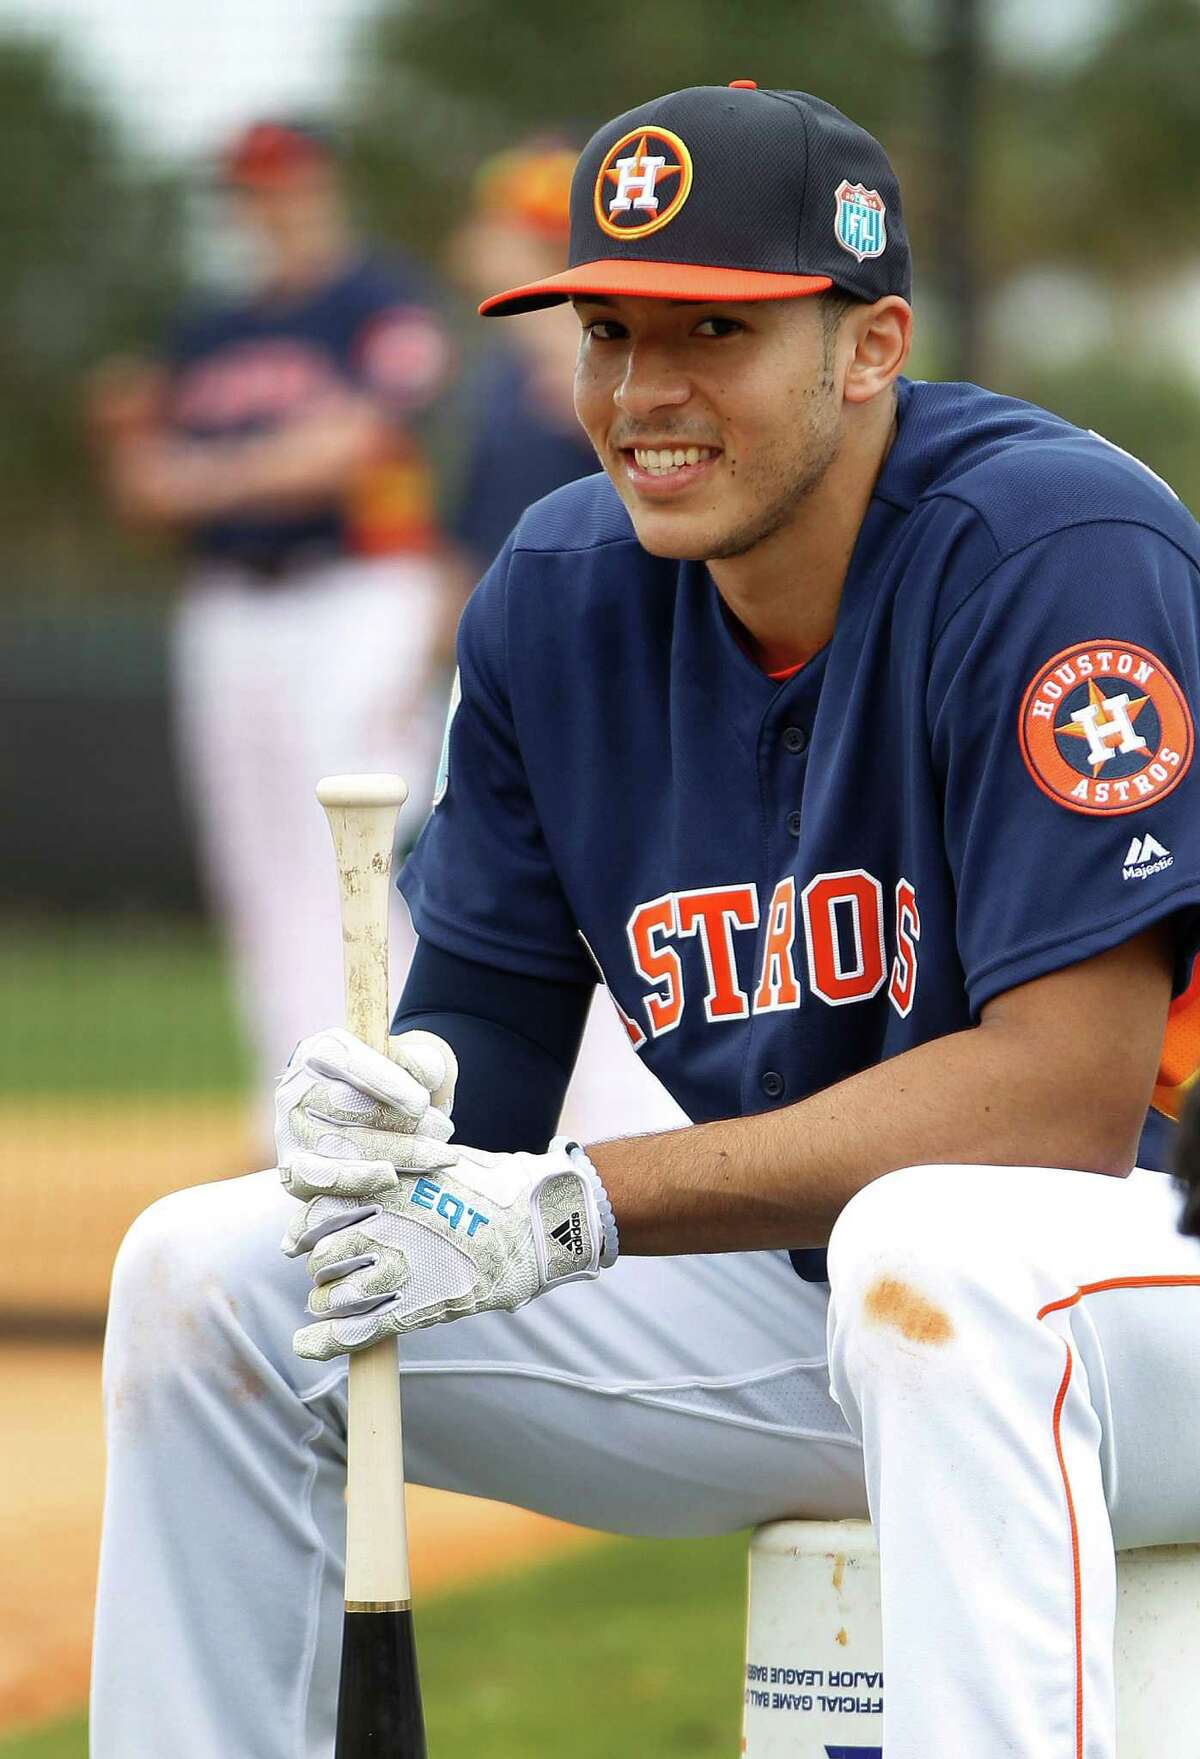 Houston Astros SS Carlos Correa waits his turn to bat during the first full-squad workouts at the Astros spring training in Kissimmee, Florida, Tuesday, Feb. 23, 2016.